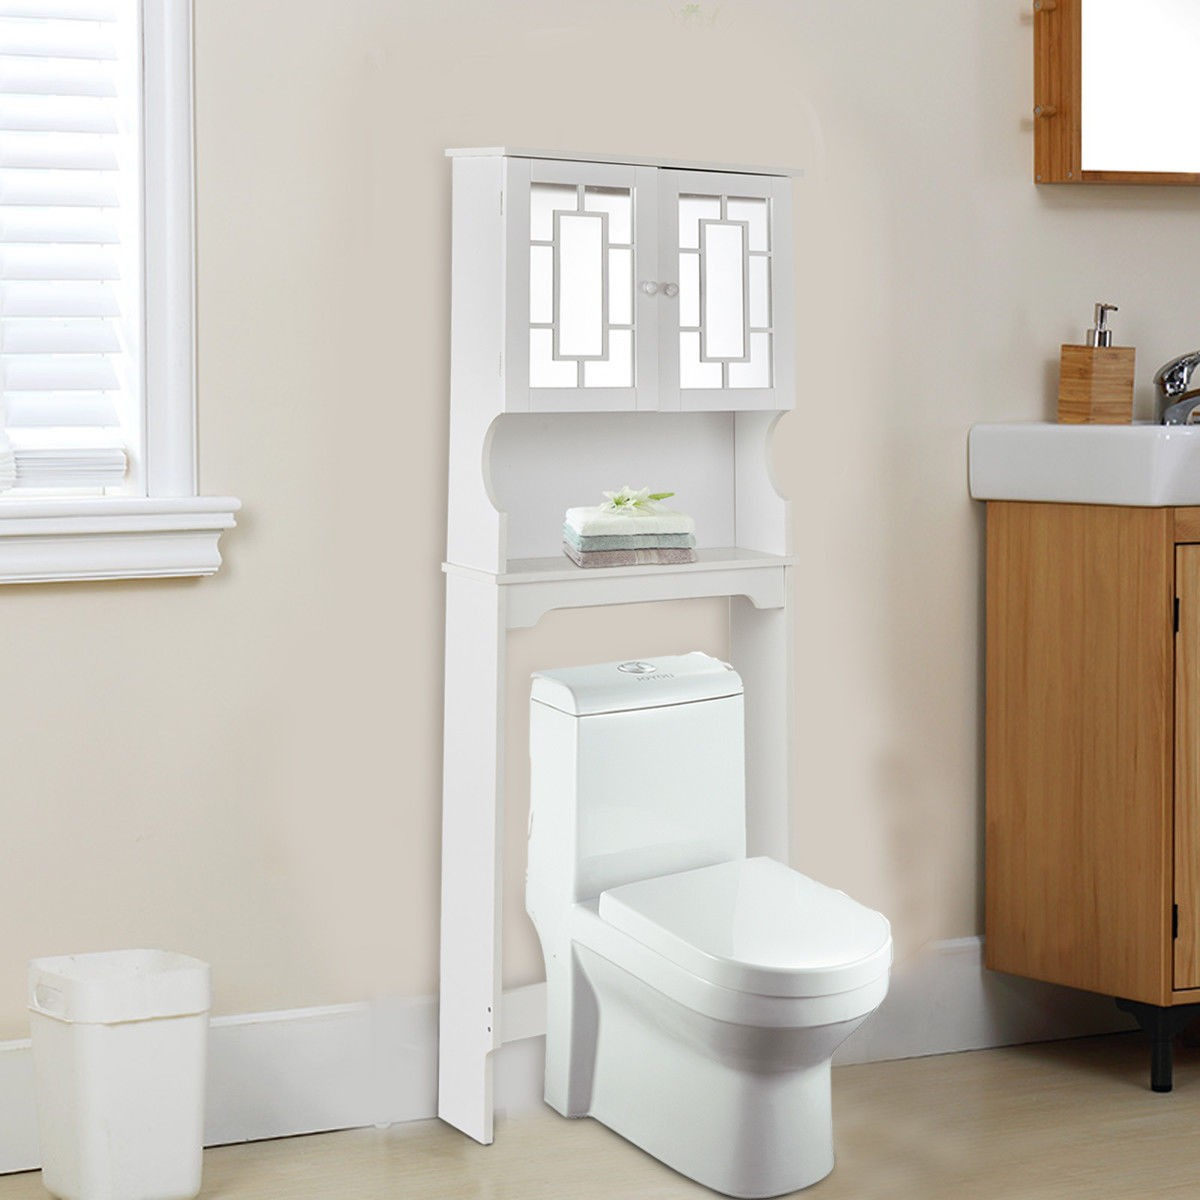 bathroom over toilet space saver storage cabinet shelf - Bathroom Cabinets That Fit Over The Toilet